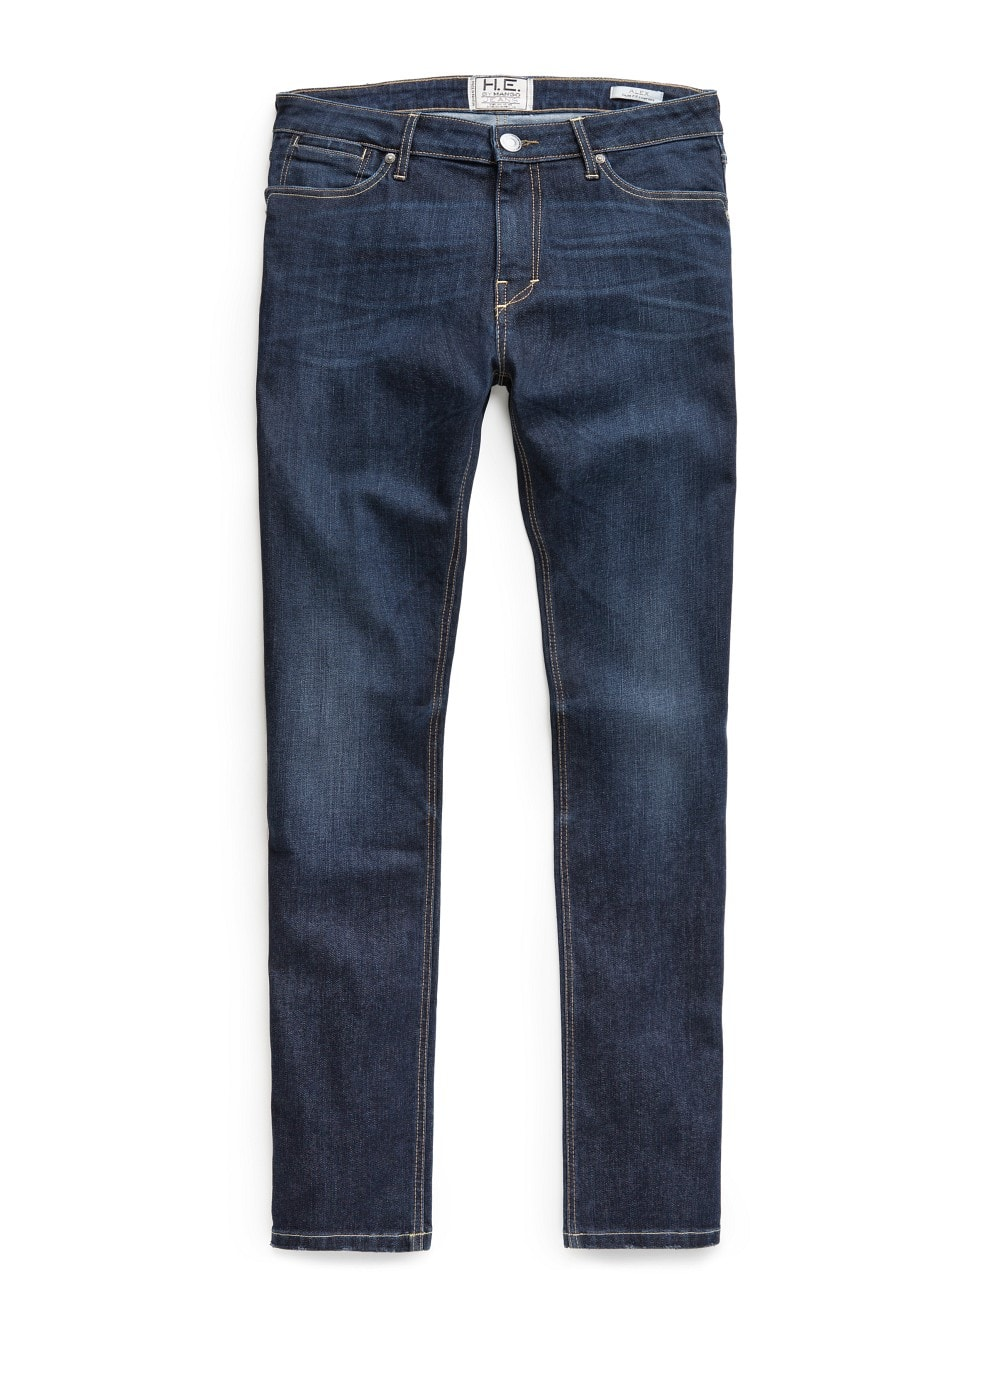 Jeans alex slim-fit lavado oscuro | MANGO MAN